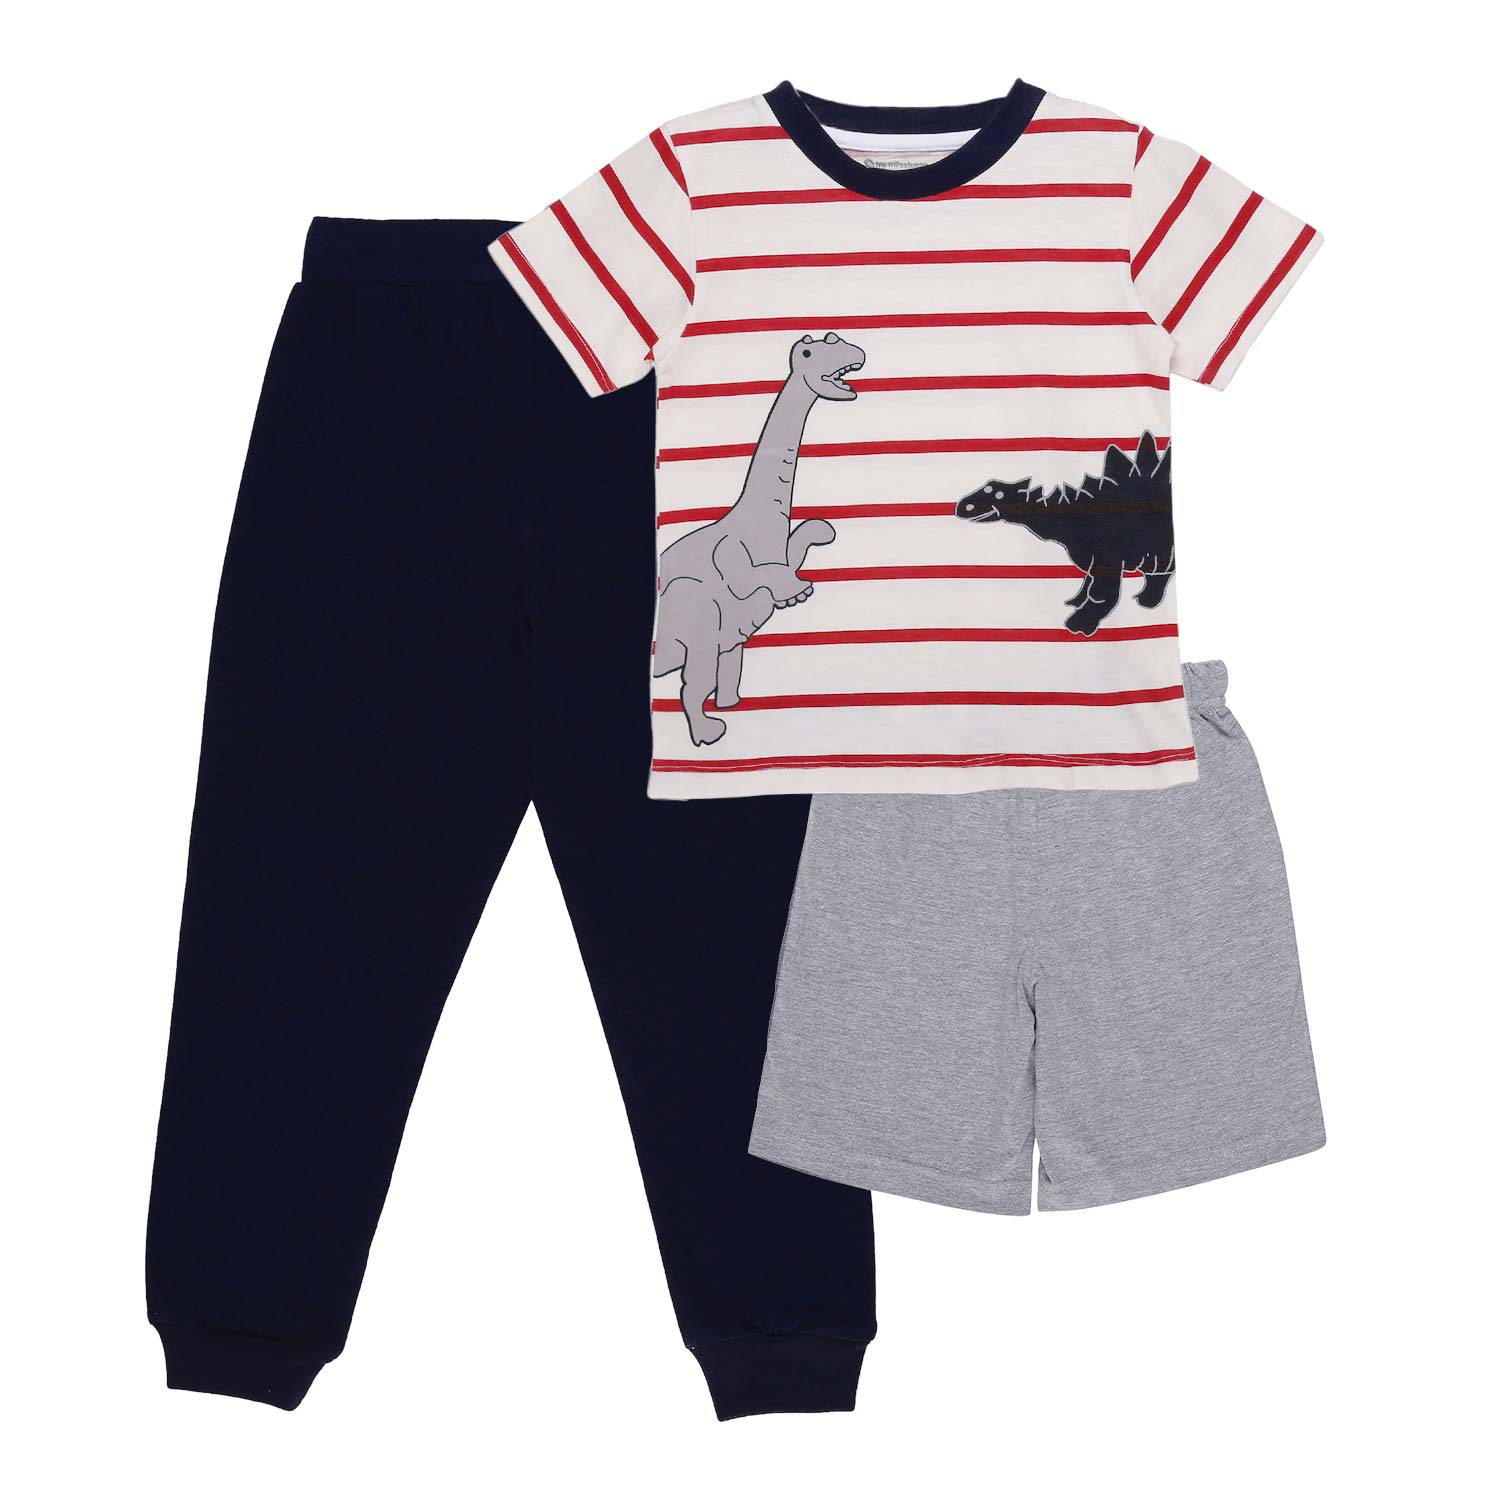 My Milestones Boys 3pcs Lounge Set - Dino Blue/Red